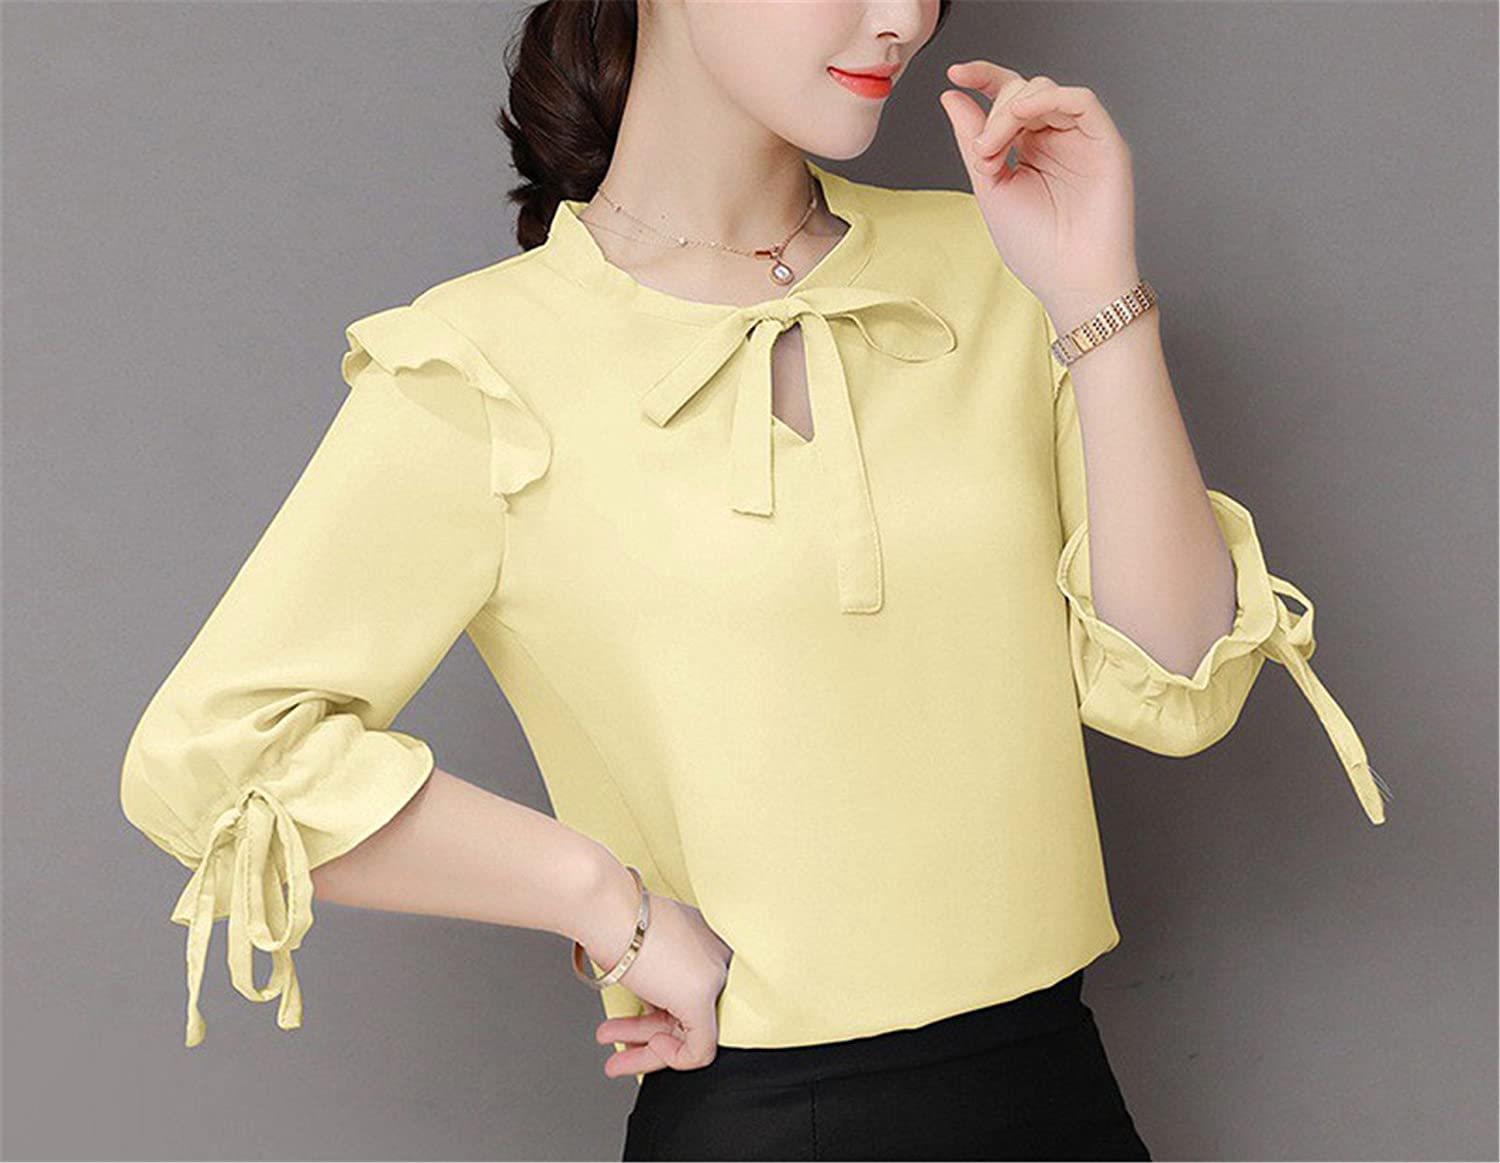 OUXIANGJU New Women Summer Chiffon Blouse Short Sleeve Office Shirts Female Ruffle Plus Size Tops at Amazon Womens Clothing store: